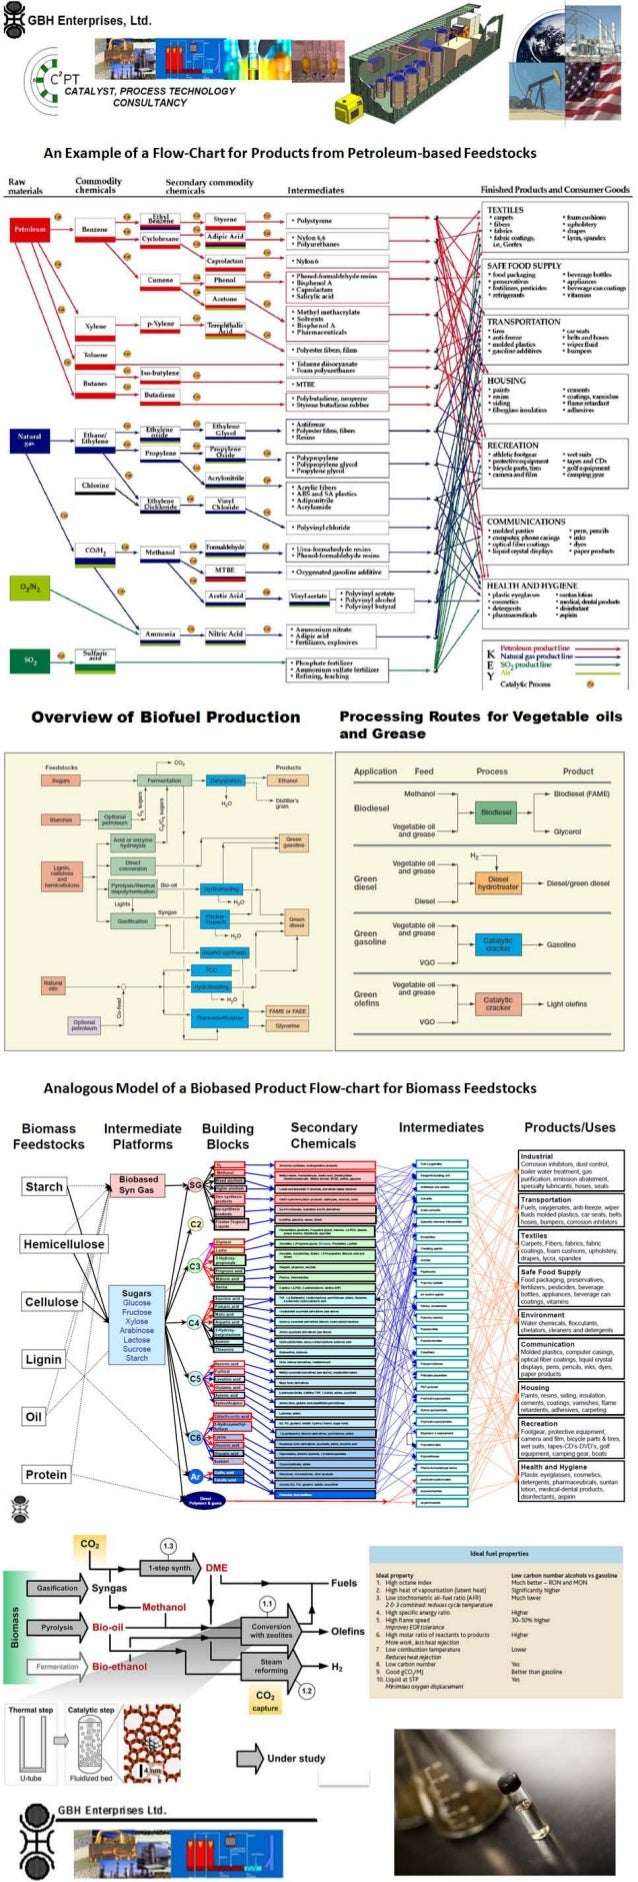 "Products from Petroleum based Feedstocks versus ""Biobased Products""  from Biomass Feedstocks - Infographic"